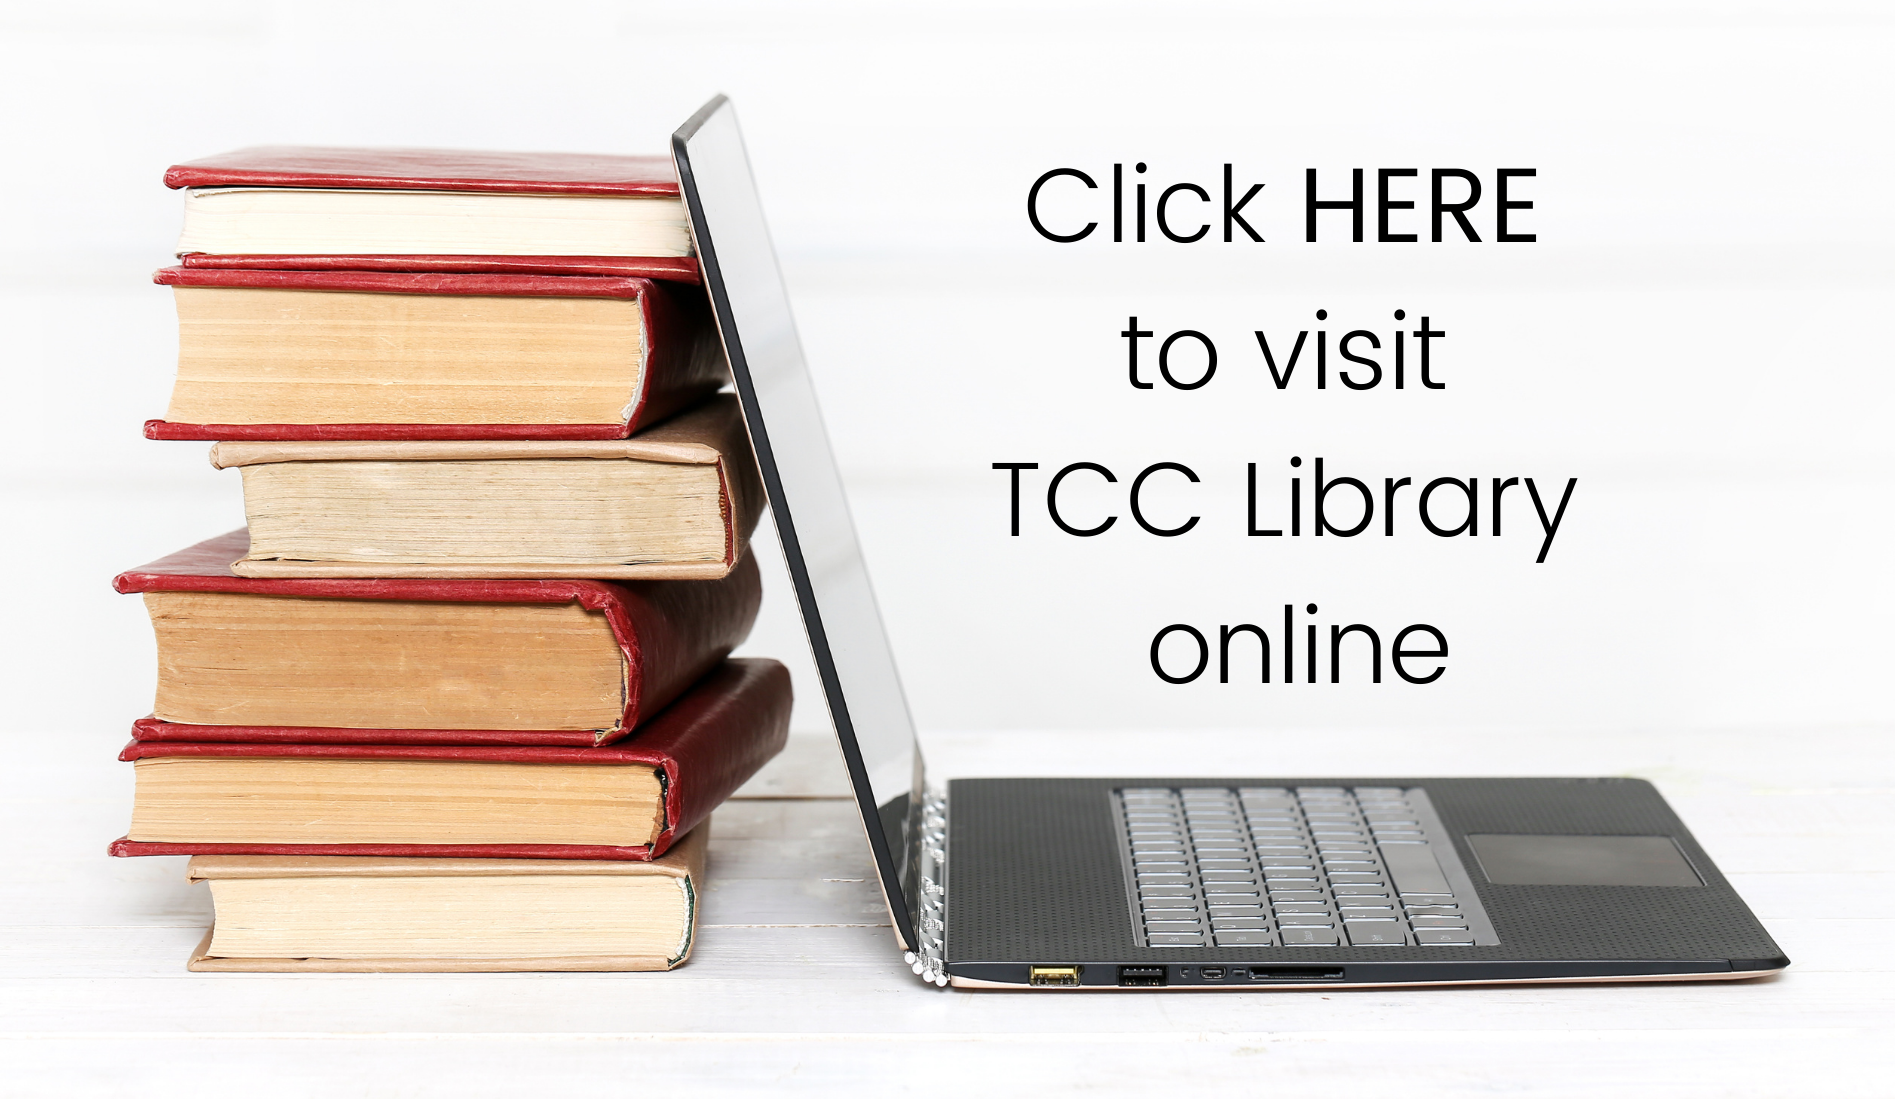 click here to visit tcc library online